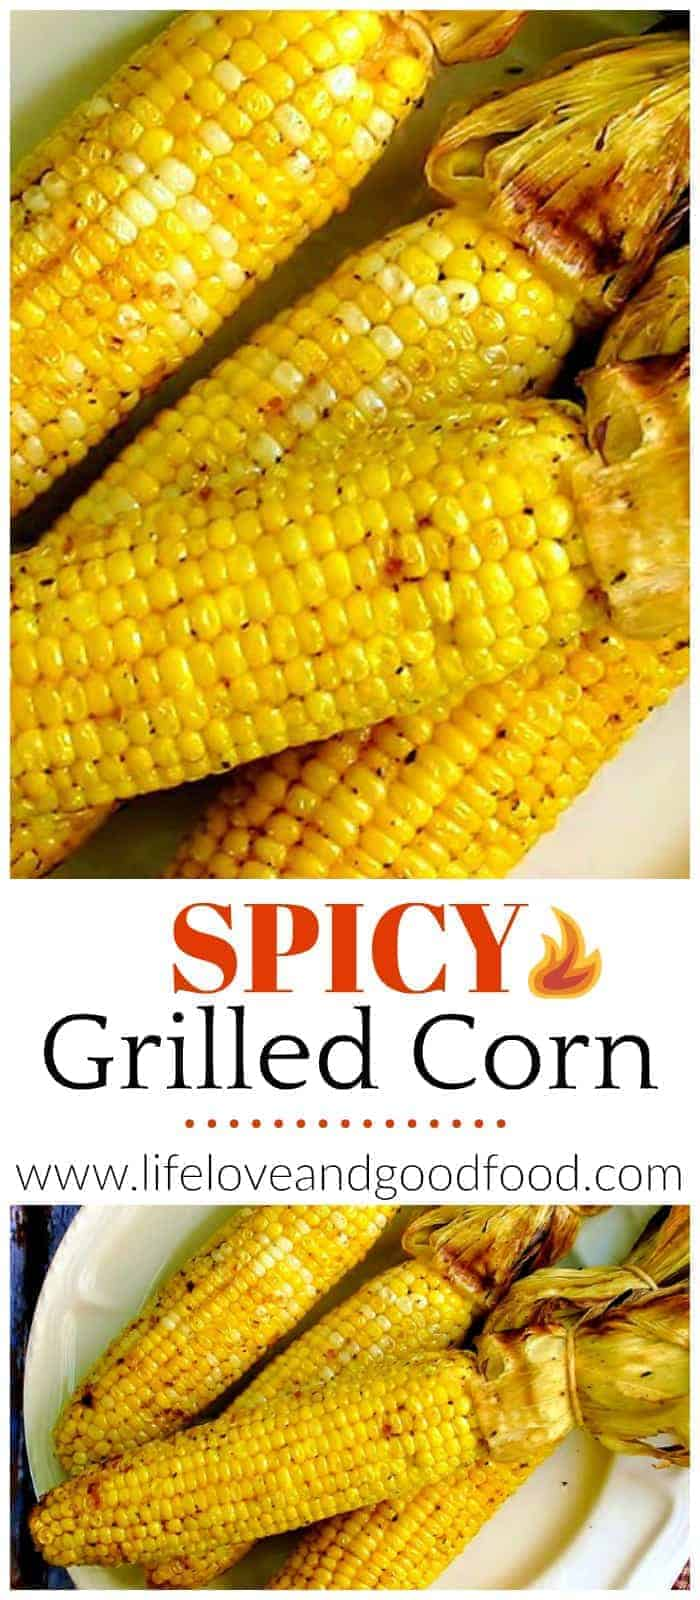 Spicy Grilled Corn. Sweet and spicy, this grilled corn is a real summertime dinner treat. The real secret is grilling in the husks.